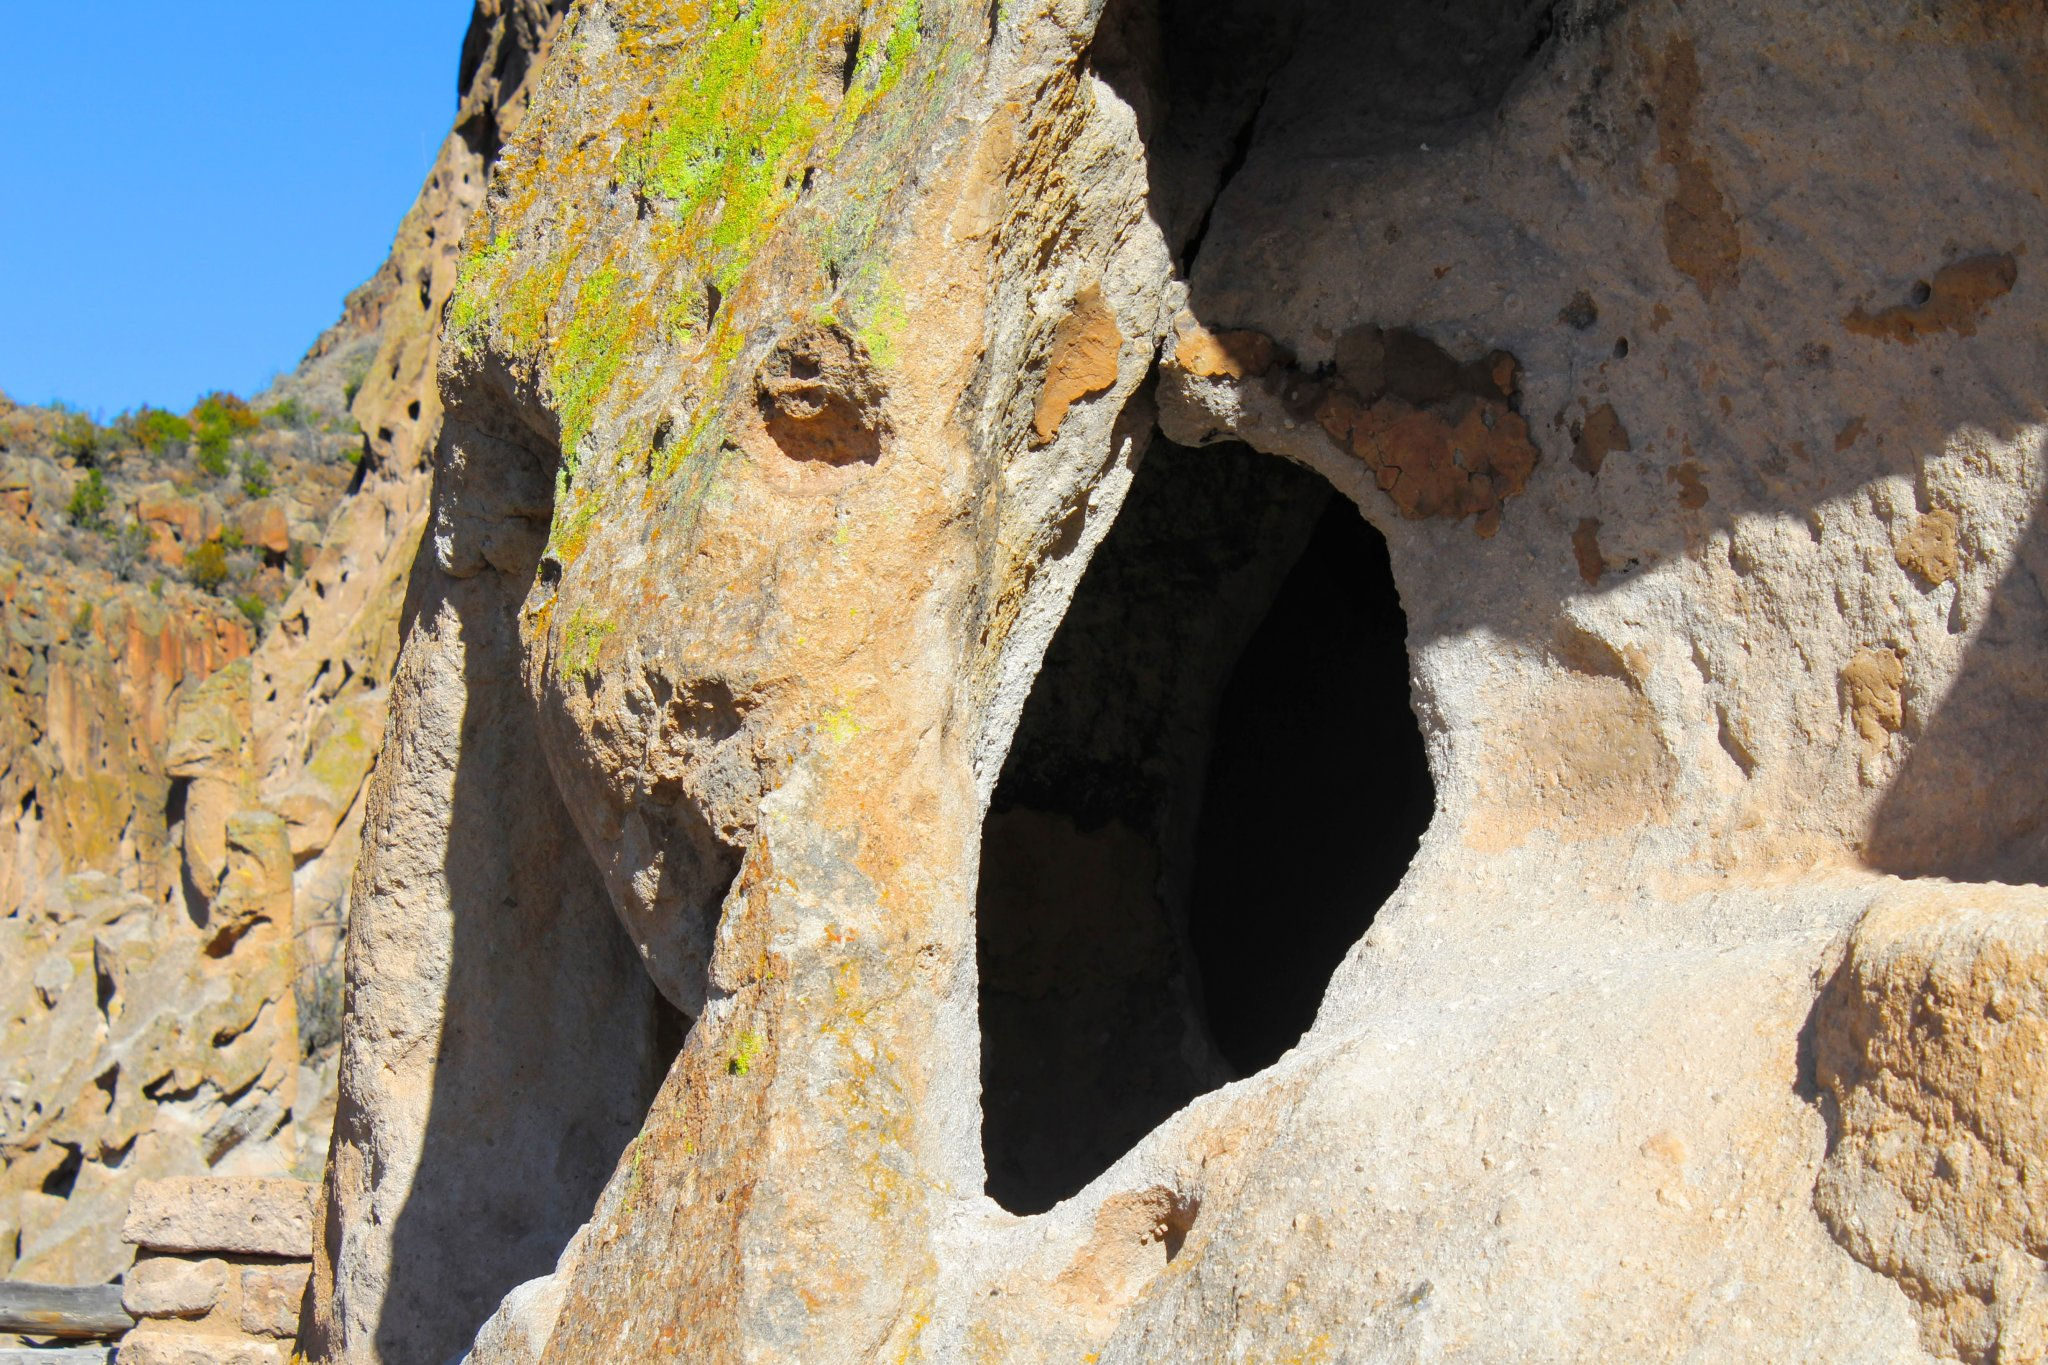 Day Trip From Santa Fe: Cliff Dwellings View Up Close